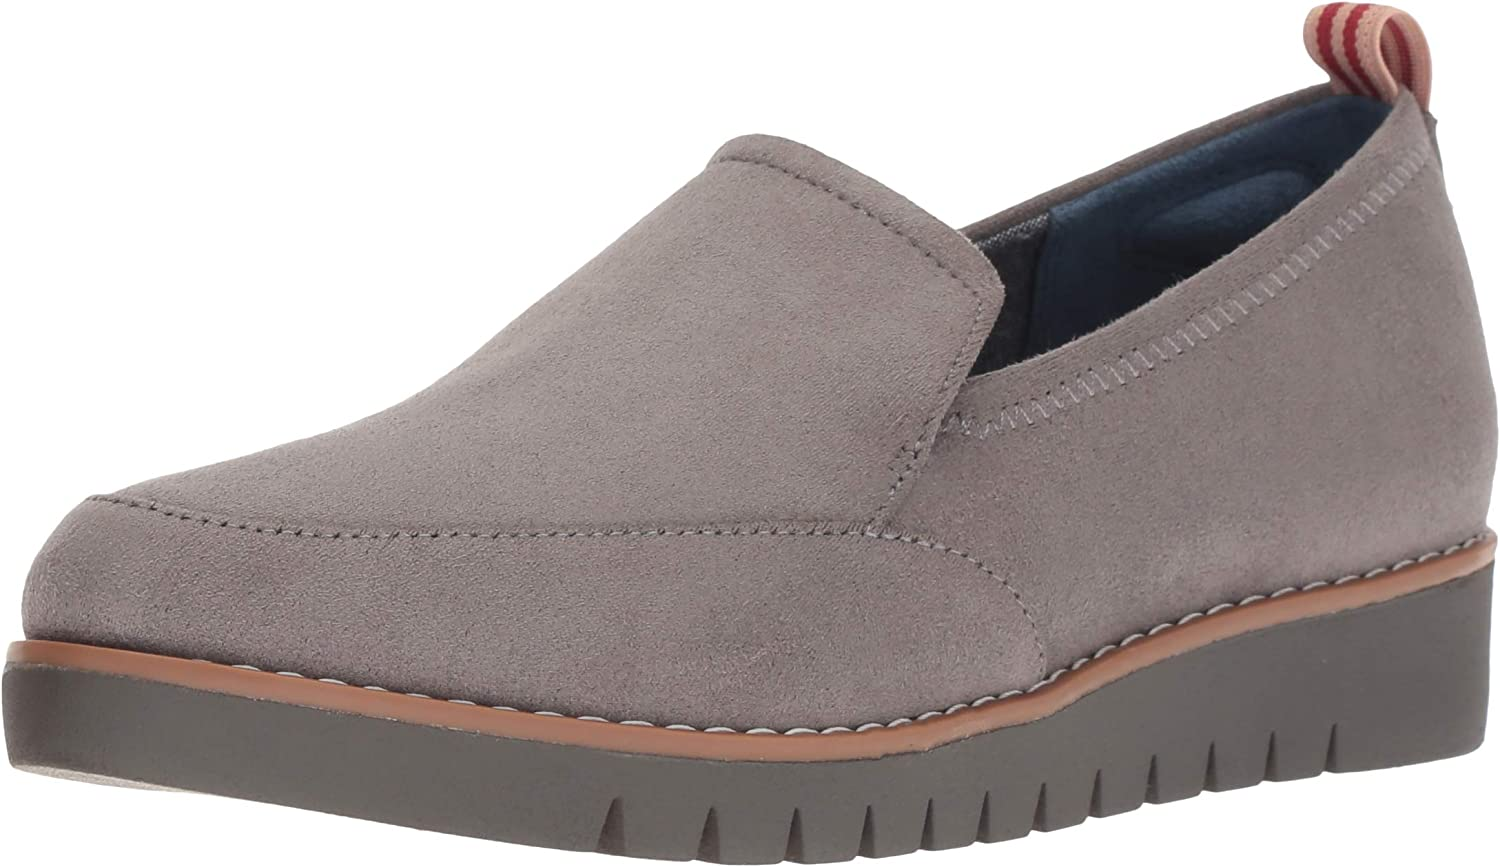 Dr. Max 55% OFF Scholl's Shoes Loafer Women's Involve Very popular